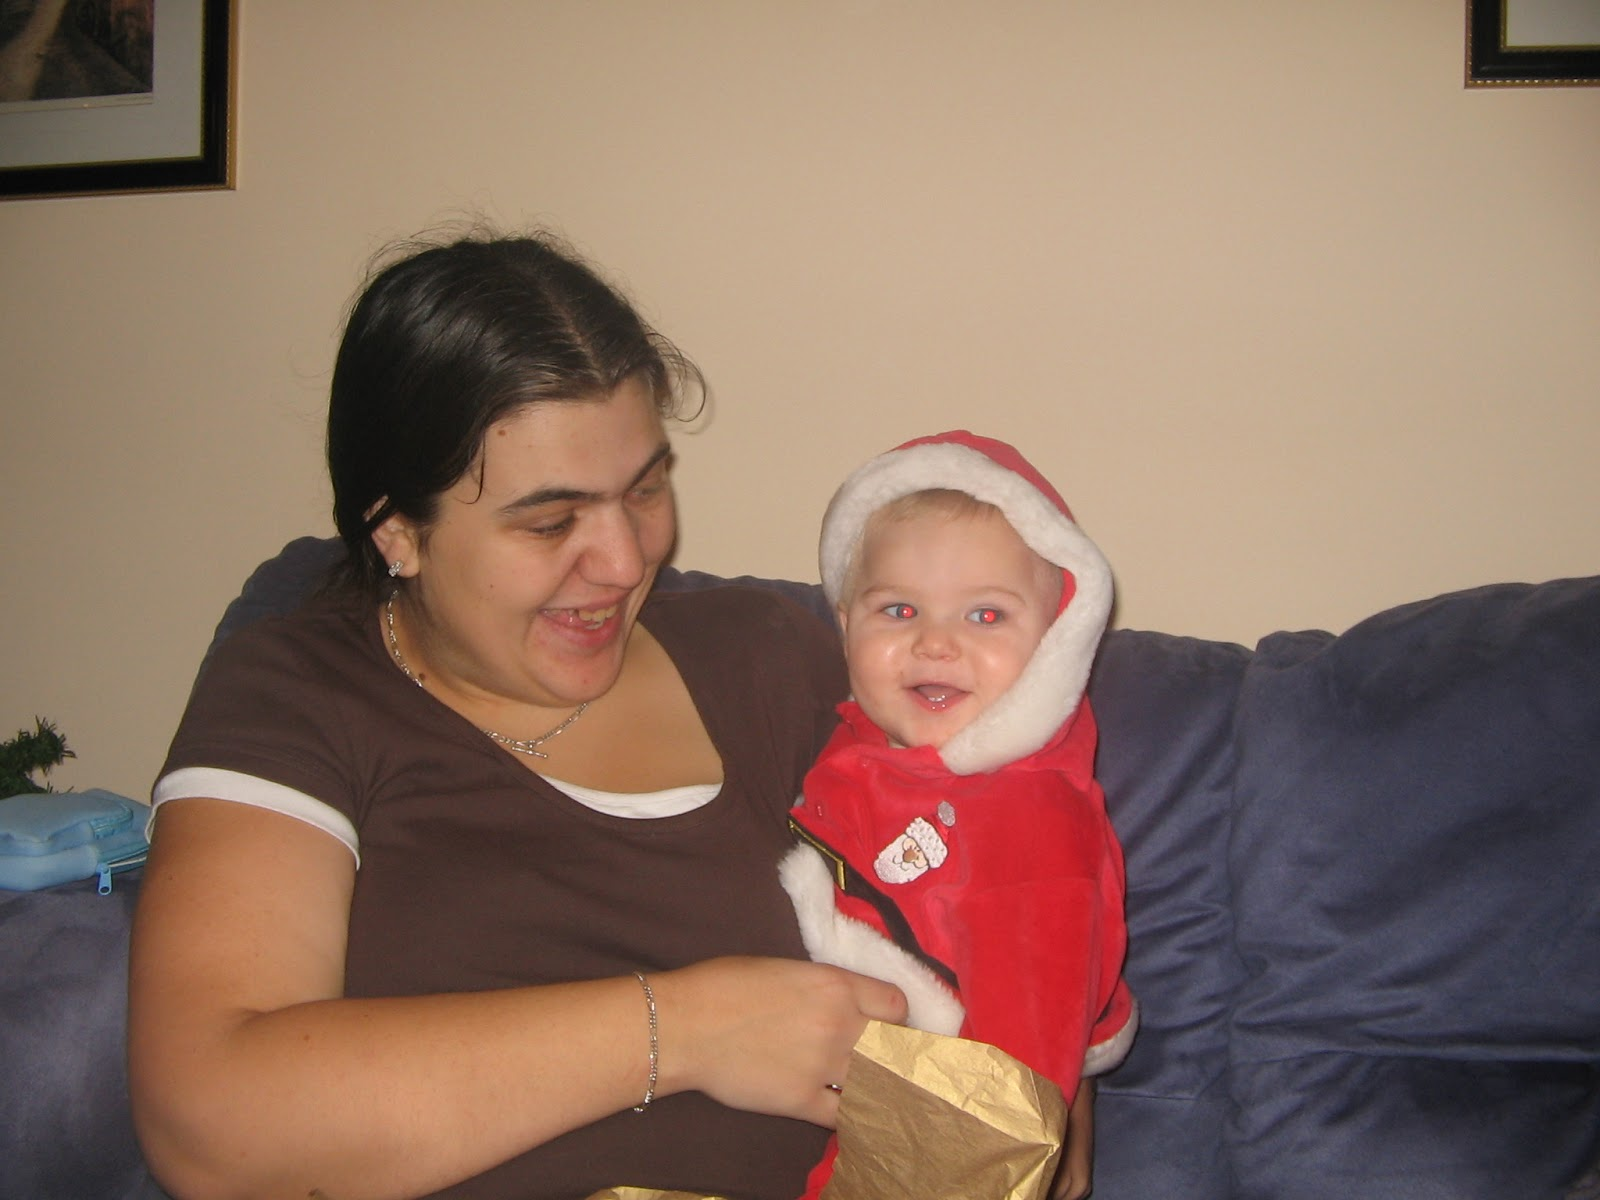 a photo of Jen holding ben as a baby, jen is in a brown top and smiling. Ben is in a santa outfit. Jen is sitting on a blue sofa.